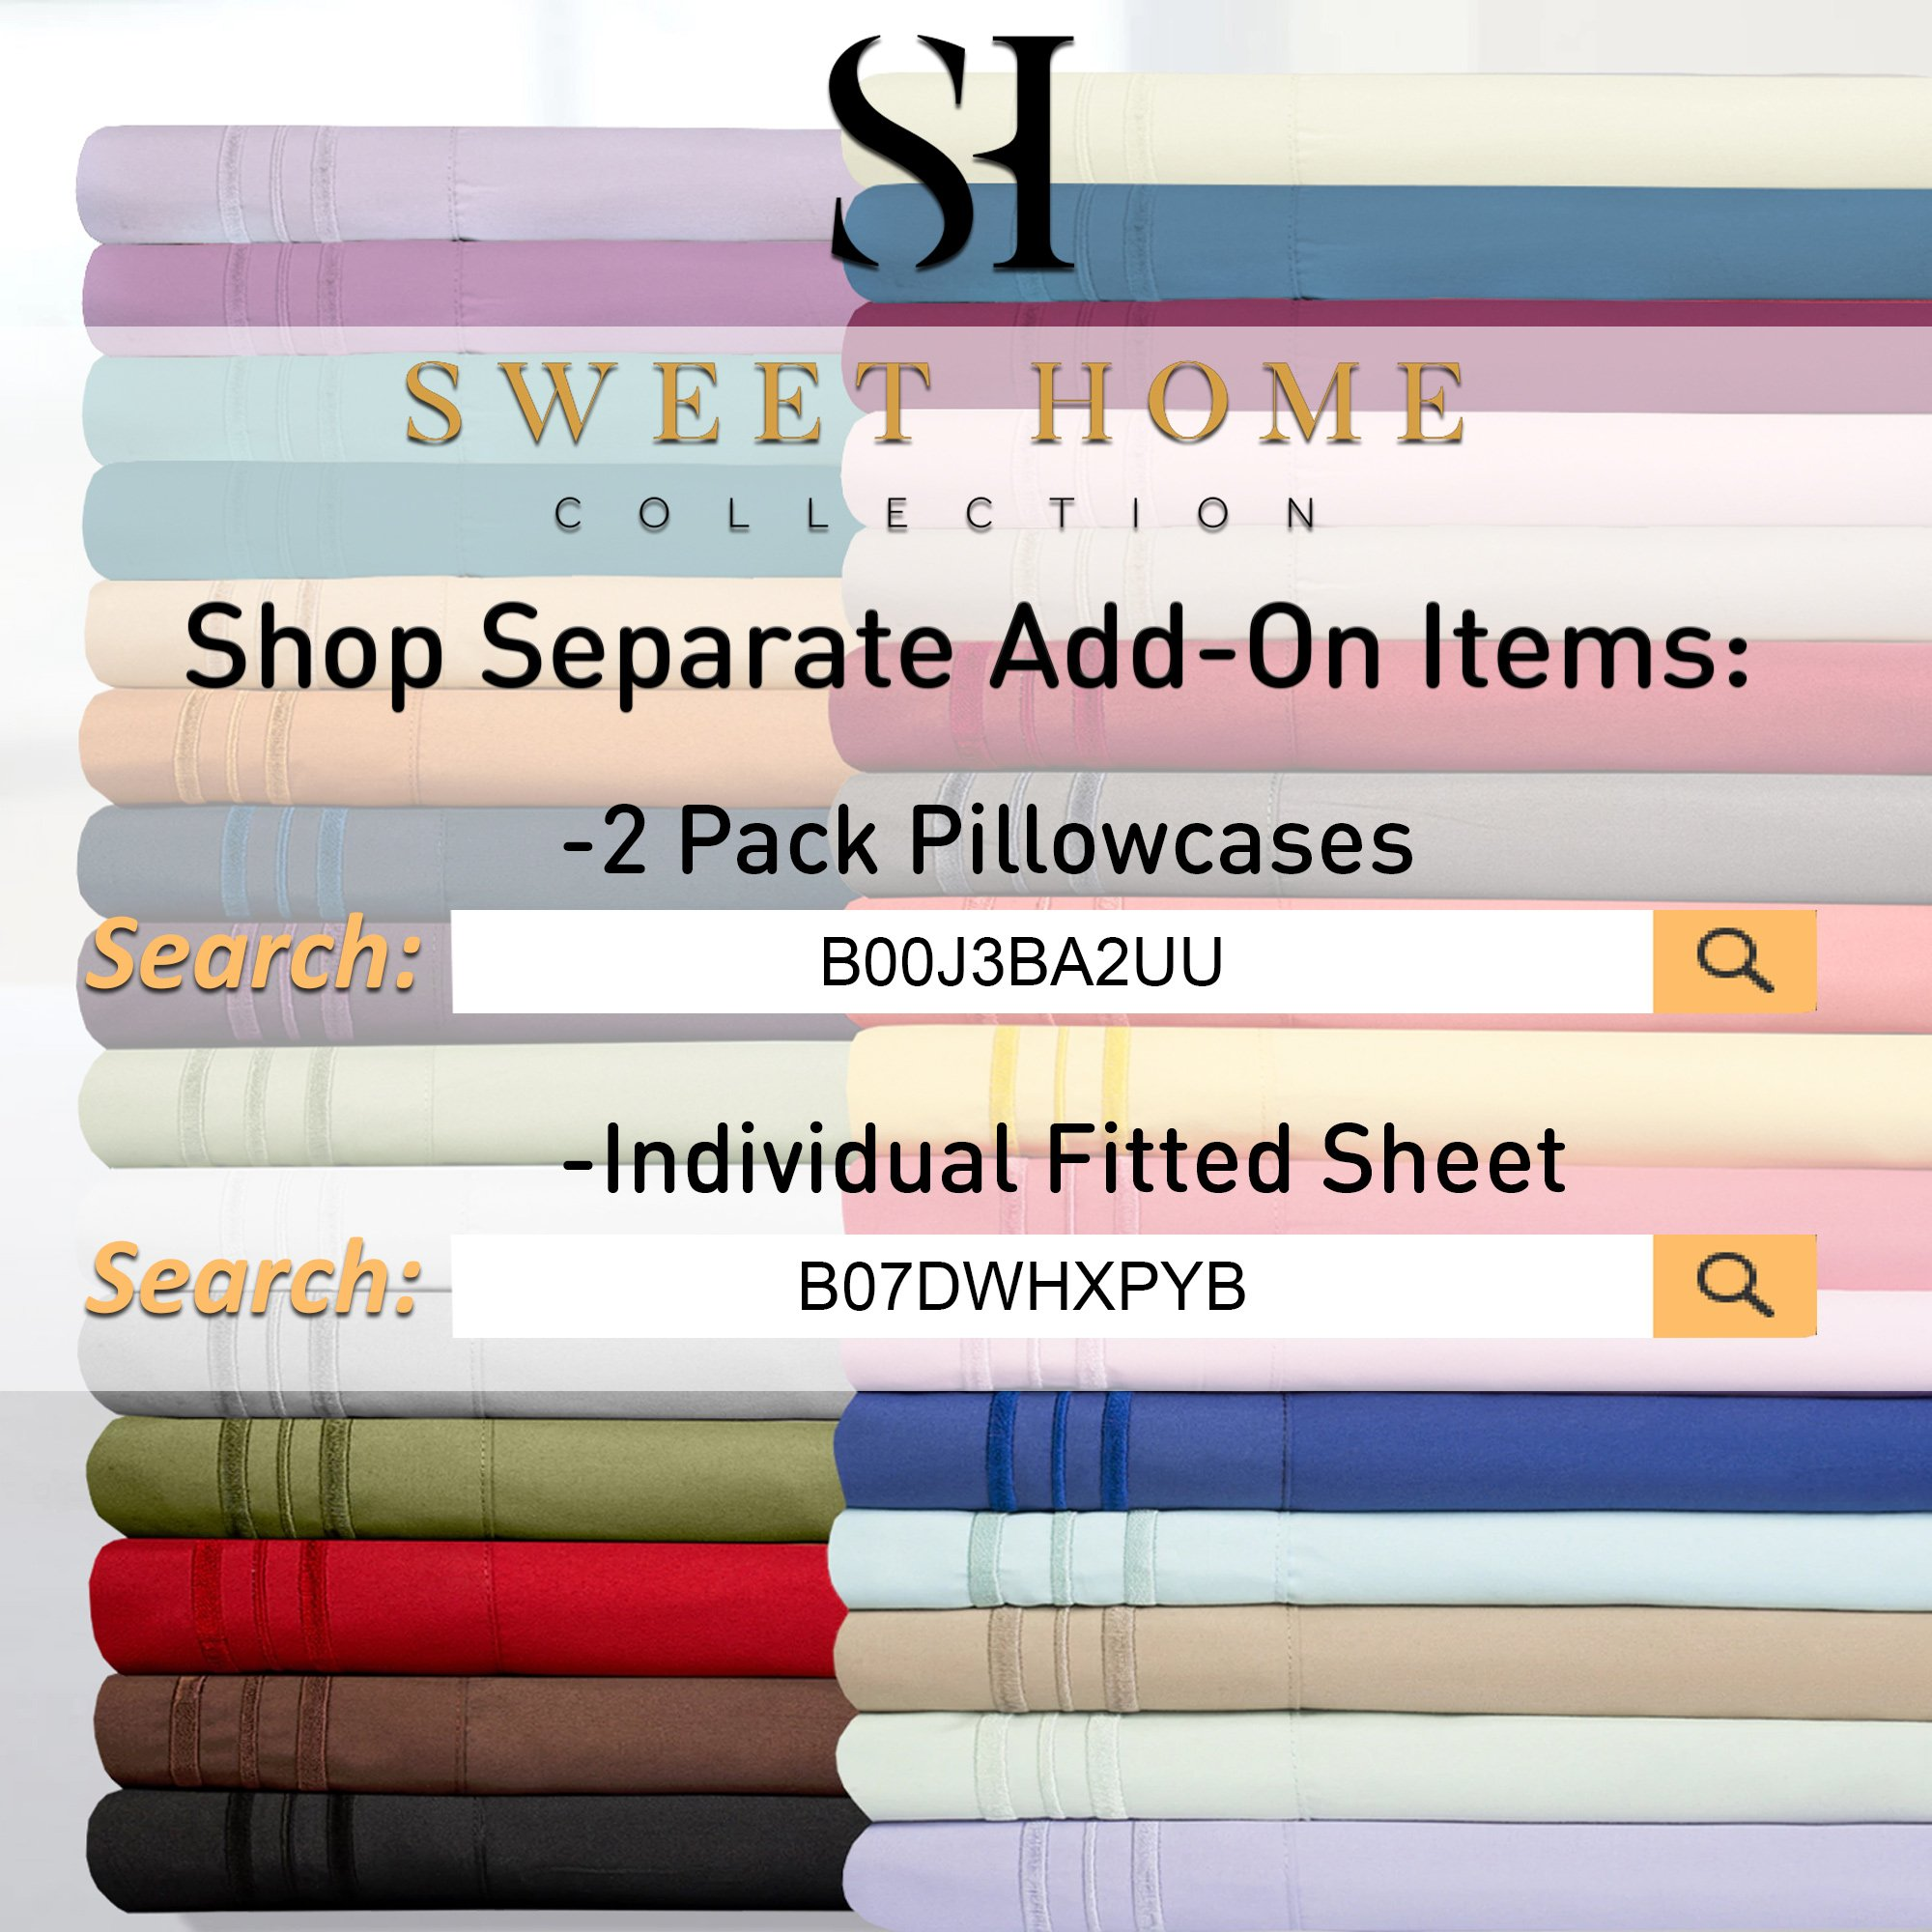 1500 Supreme Collection Extra Soft Queen Sheets Set, Beige - Luxury Bed Sheets Set With Deep Pocket Wrinkle Free Hypoallergenic Bedding, Over 40 Colors, Queen Size, Beige by Sweet Home Collection (Image #7)